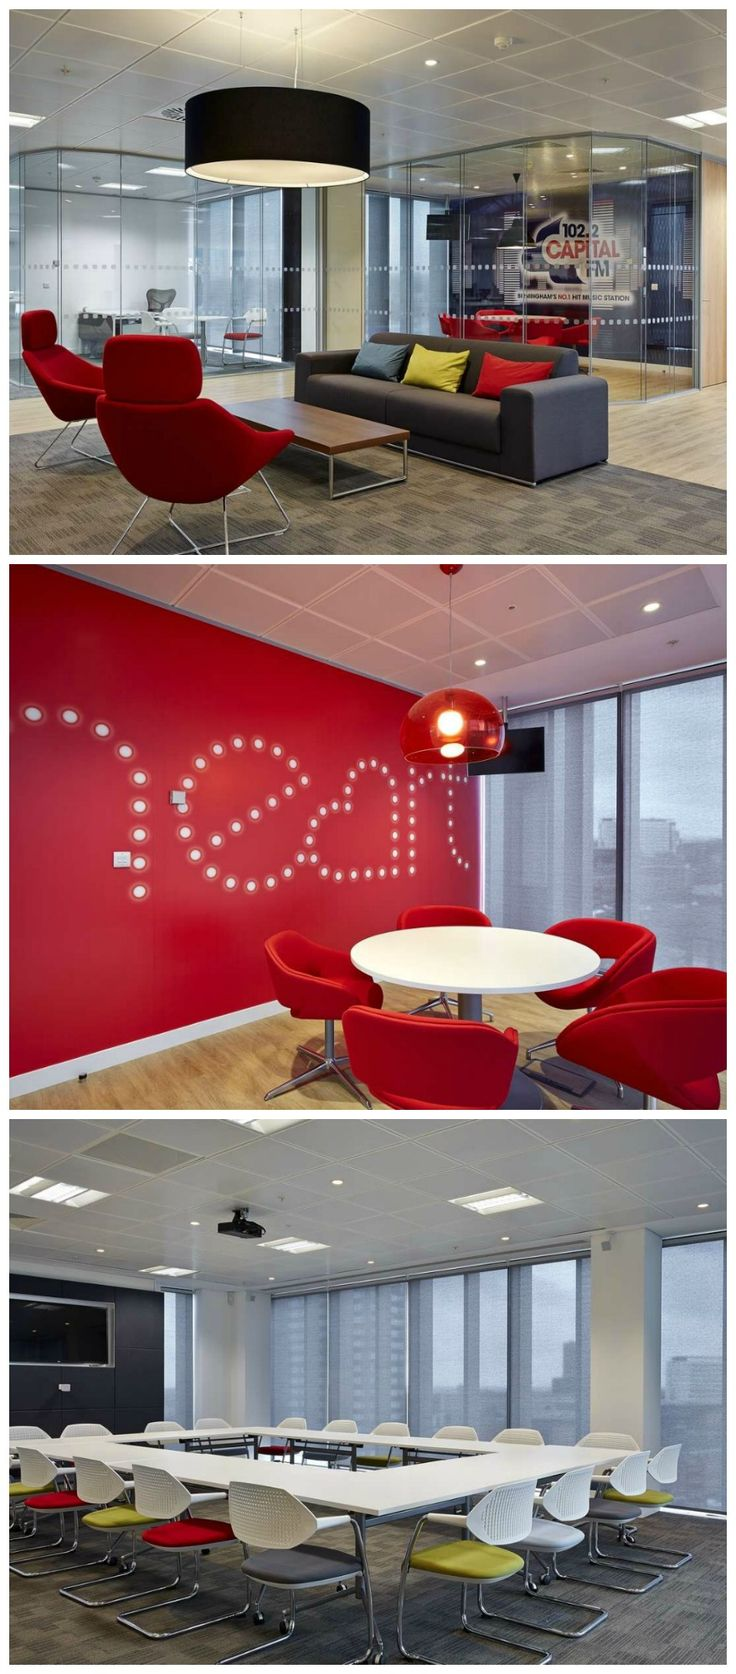 Meeting Rooms at Global Radio, home to Heart FM and Capital Radio.  Overbury designed and built Global Radio's new premises at Brindley Place, Birmingham, which included a variety of meeting rooms including a board room, glass-walled meeting rooms and informal meeting spaces. Many of the spaces include workplace branding which adds colour and personality to the spaces, like this 'heart' branded meeting room with bright red wall and red chairs.  See more on our website: